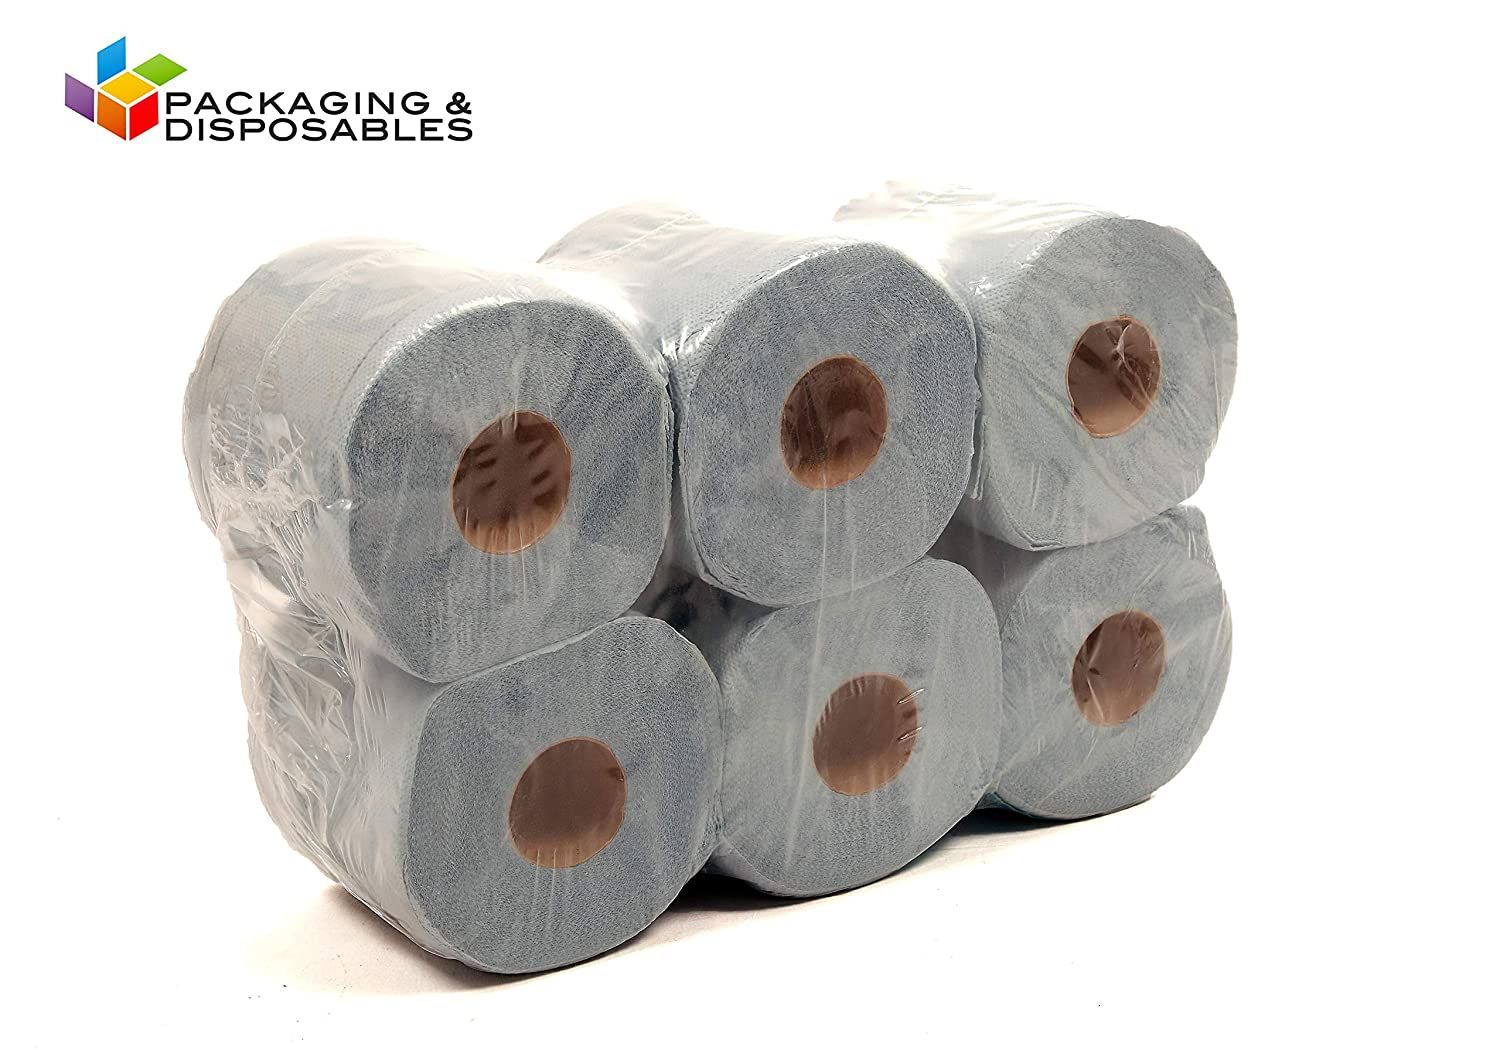 6 x BLUE 2 PLY CENTREFEED PAPER TOWEL ROLLS